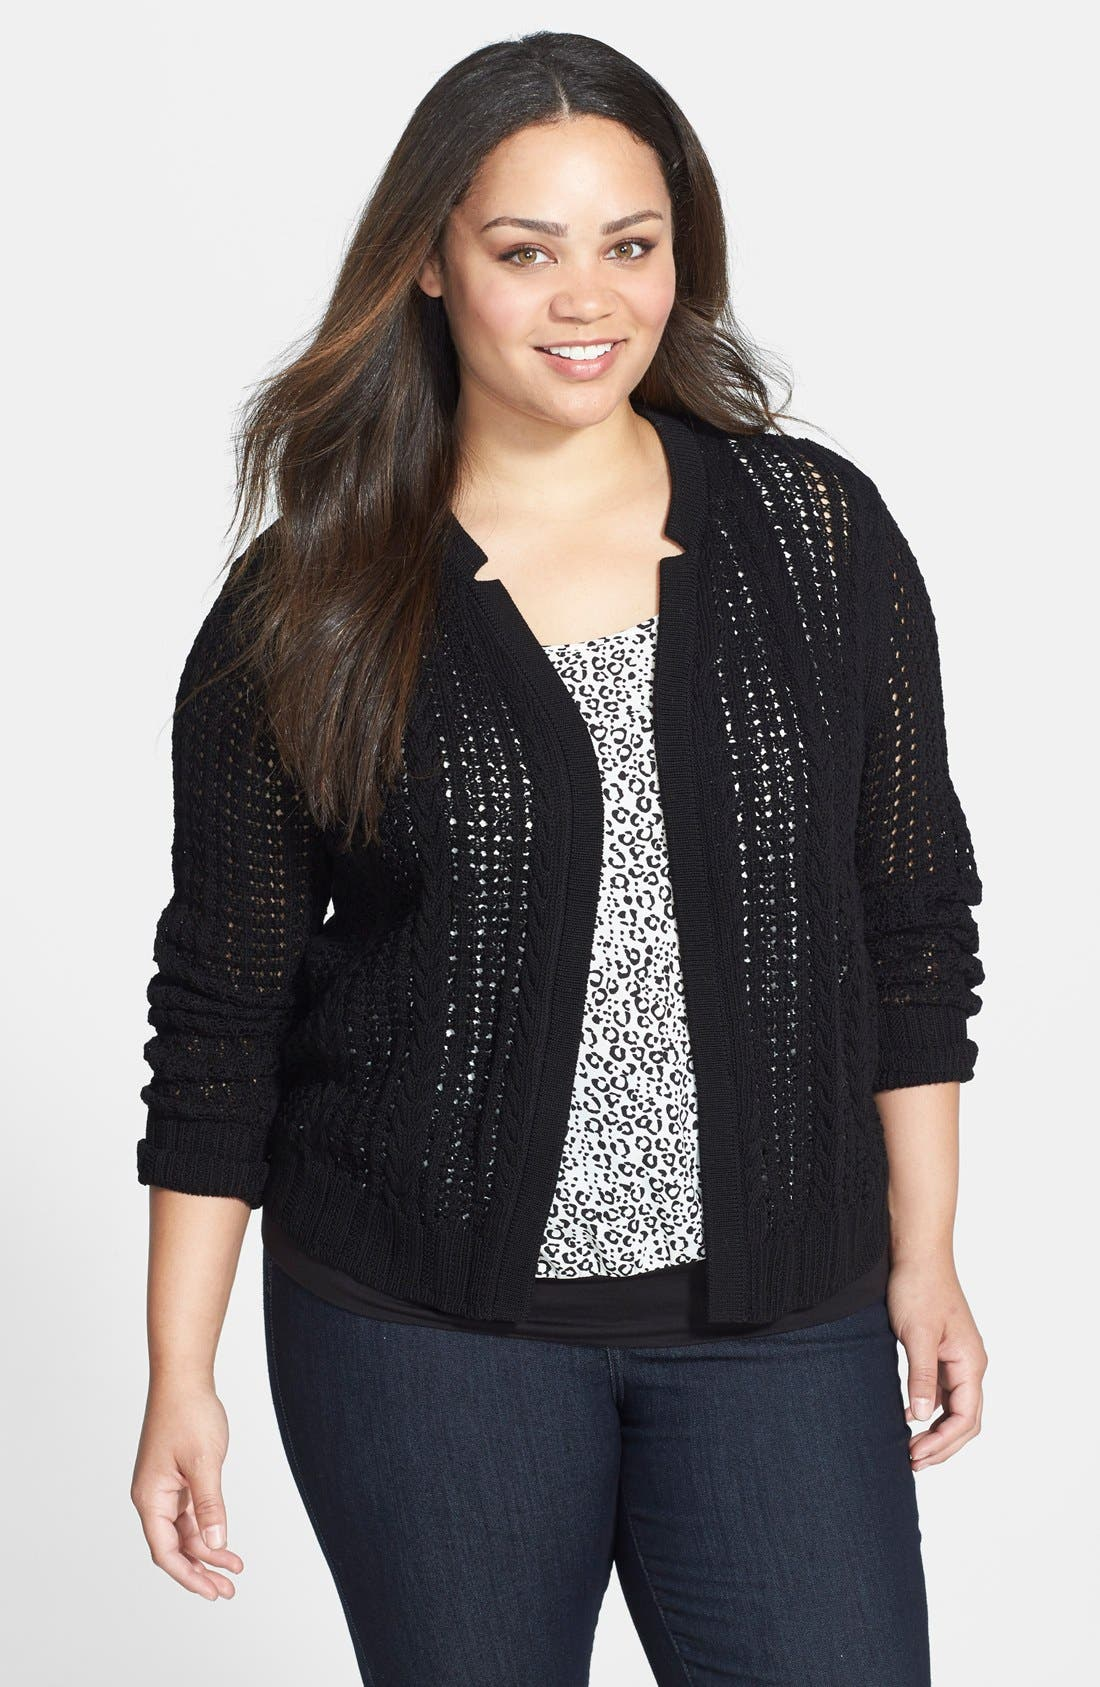 Alternate Image 1 Selected - Anne Klein Mixed Knit Cardigan (Plus Size)